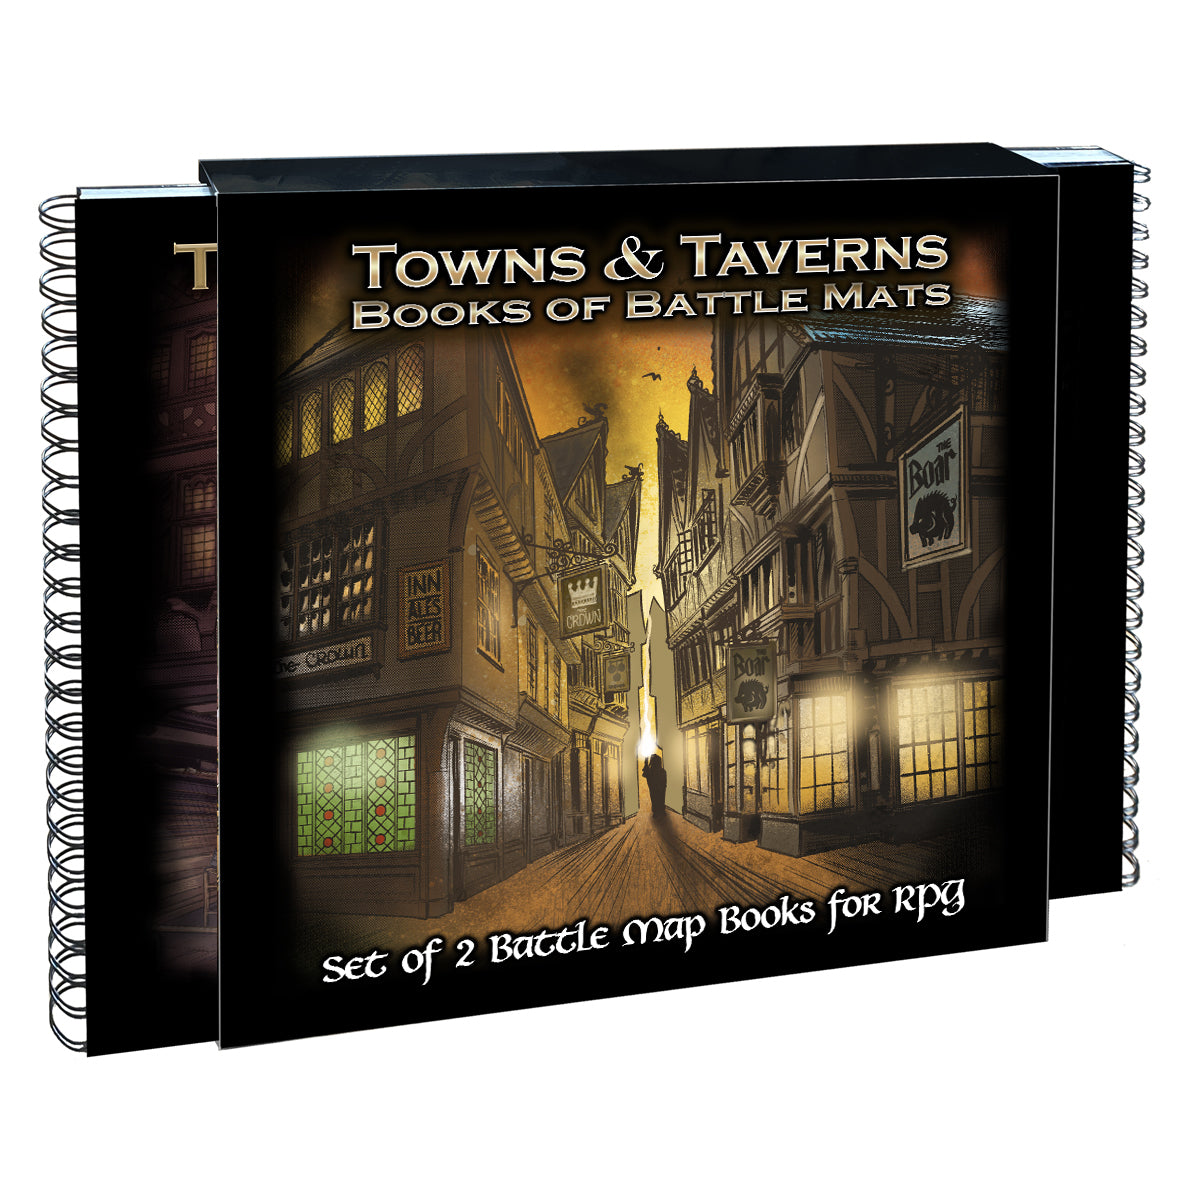 Towns and Taverns